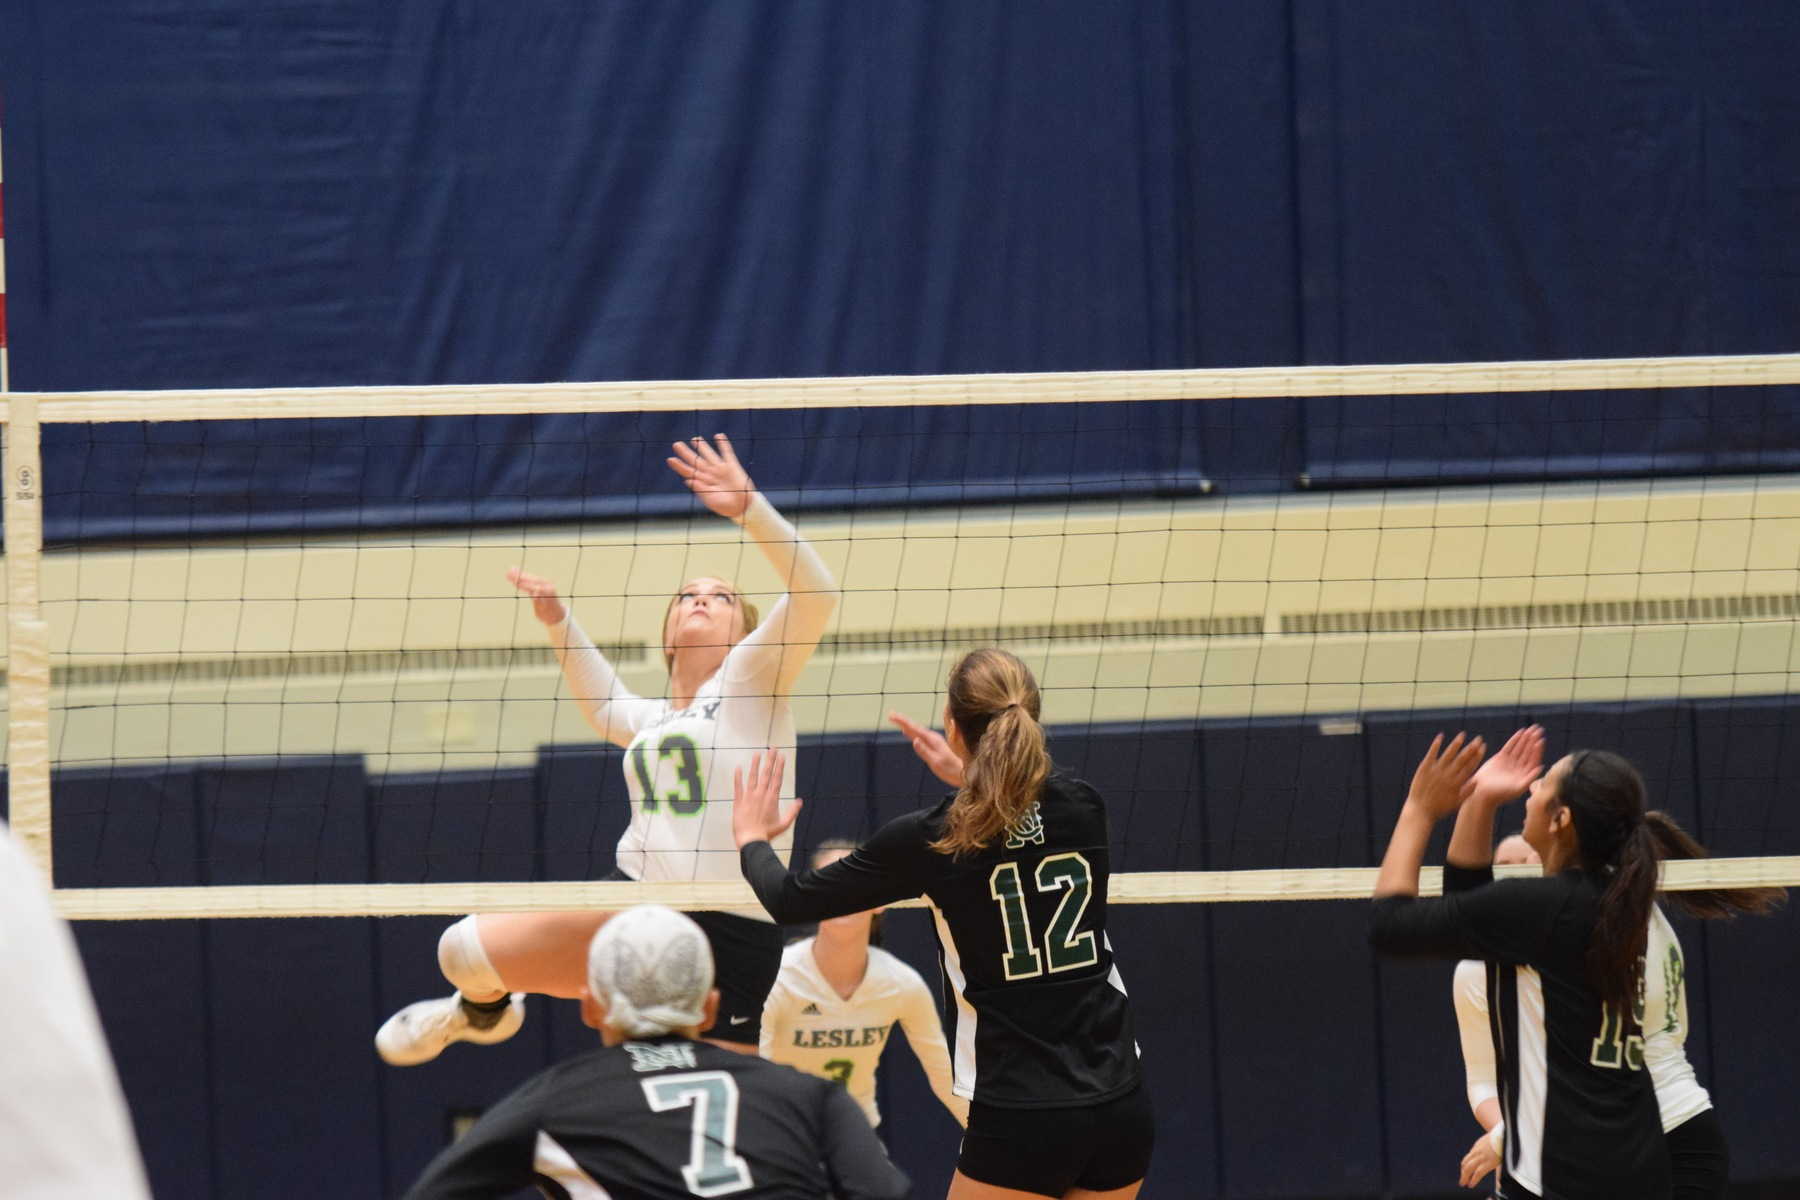 Lynx downed Dean 3-2, Remain Untouched in Conference Action